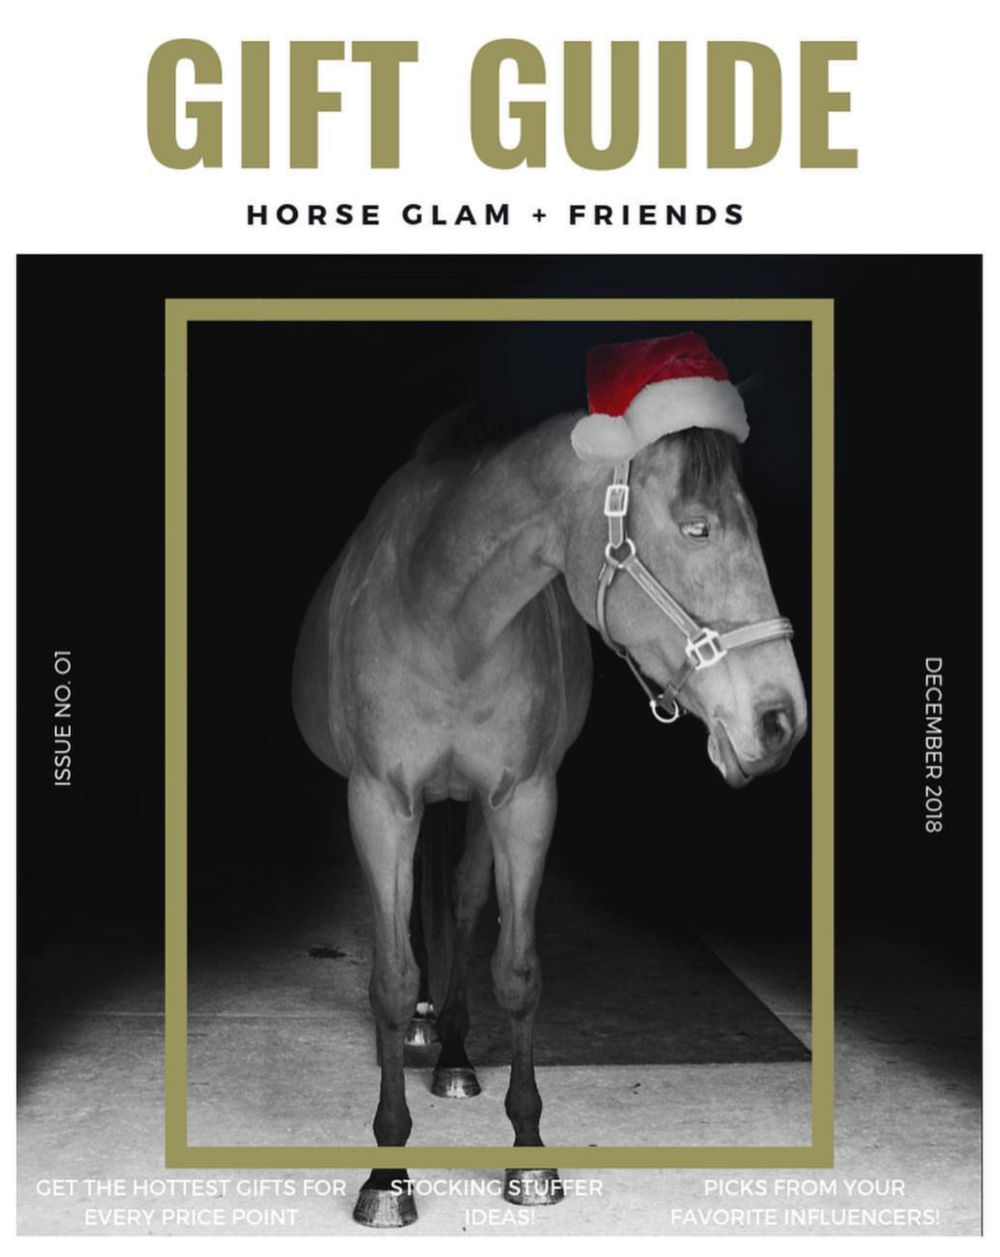 Horse Glam - Horse Glam Holiday Gift Guide, page 11@horse_glam